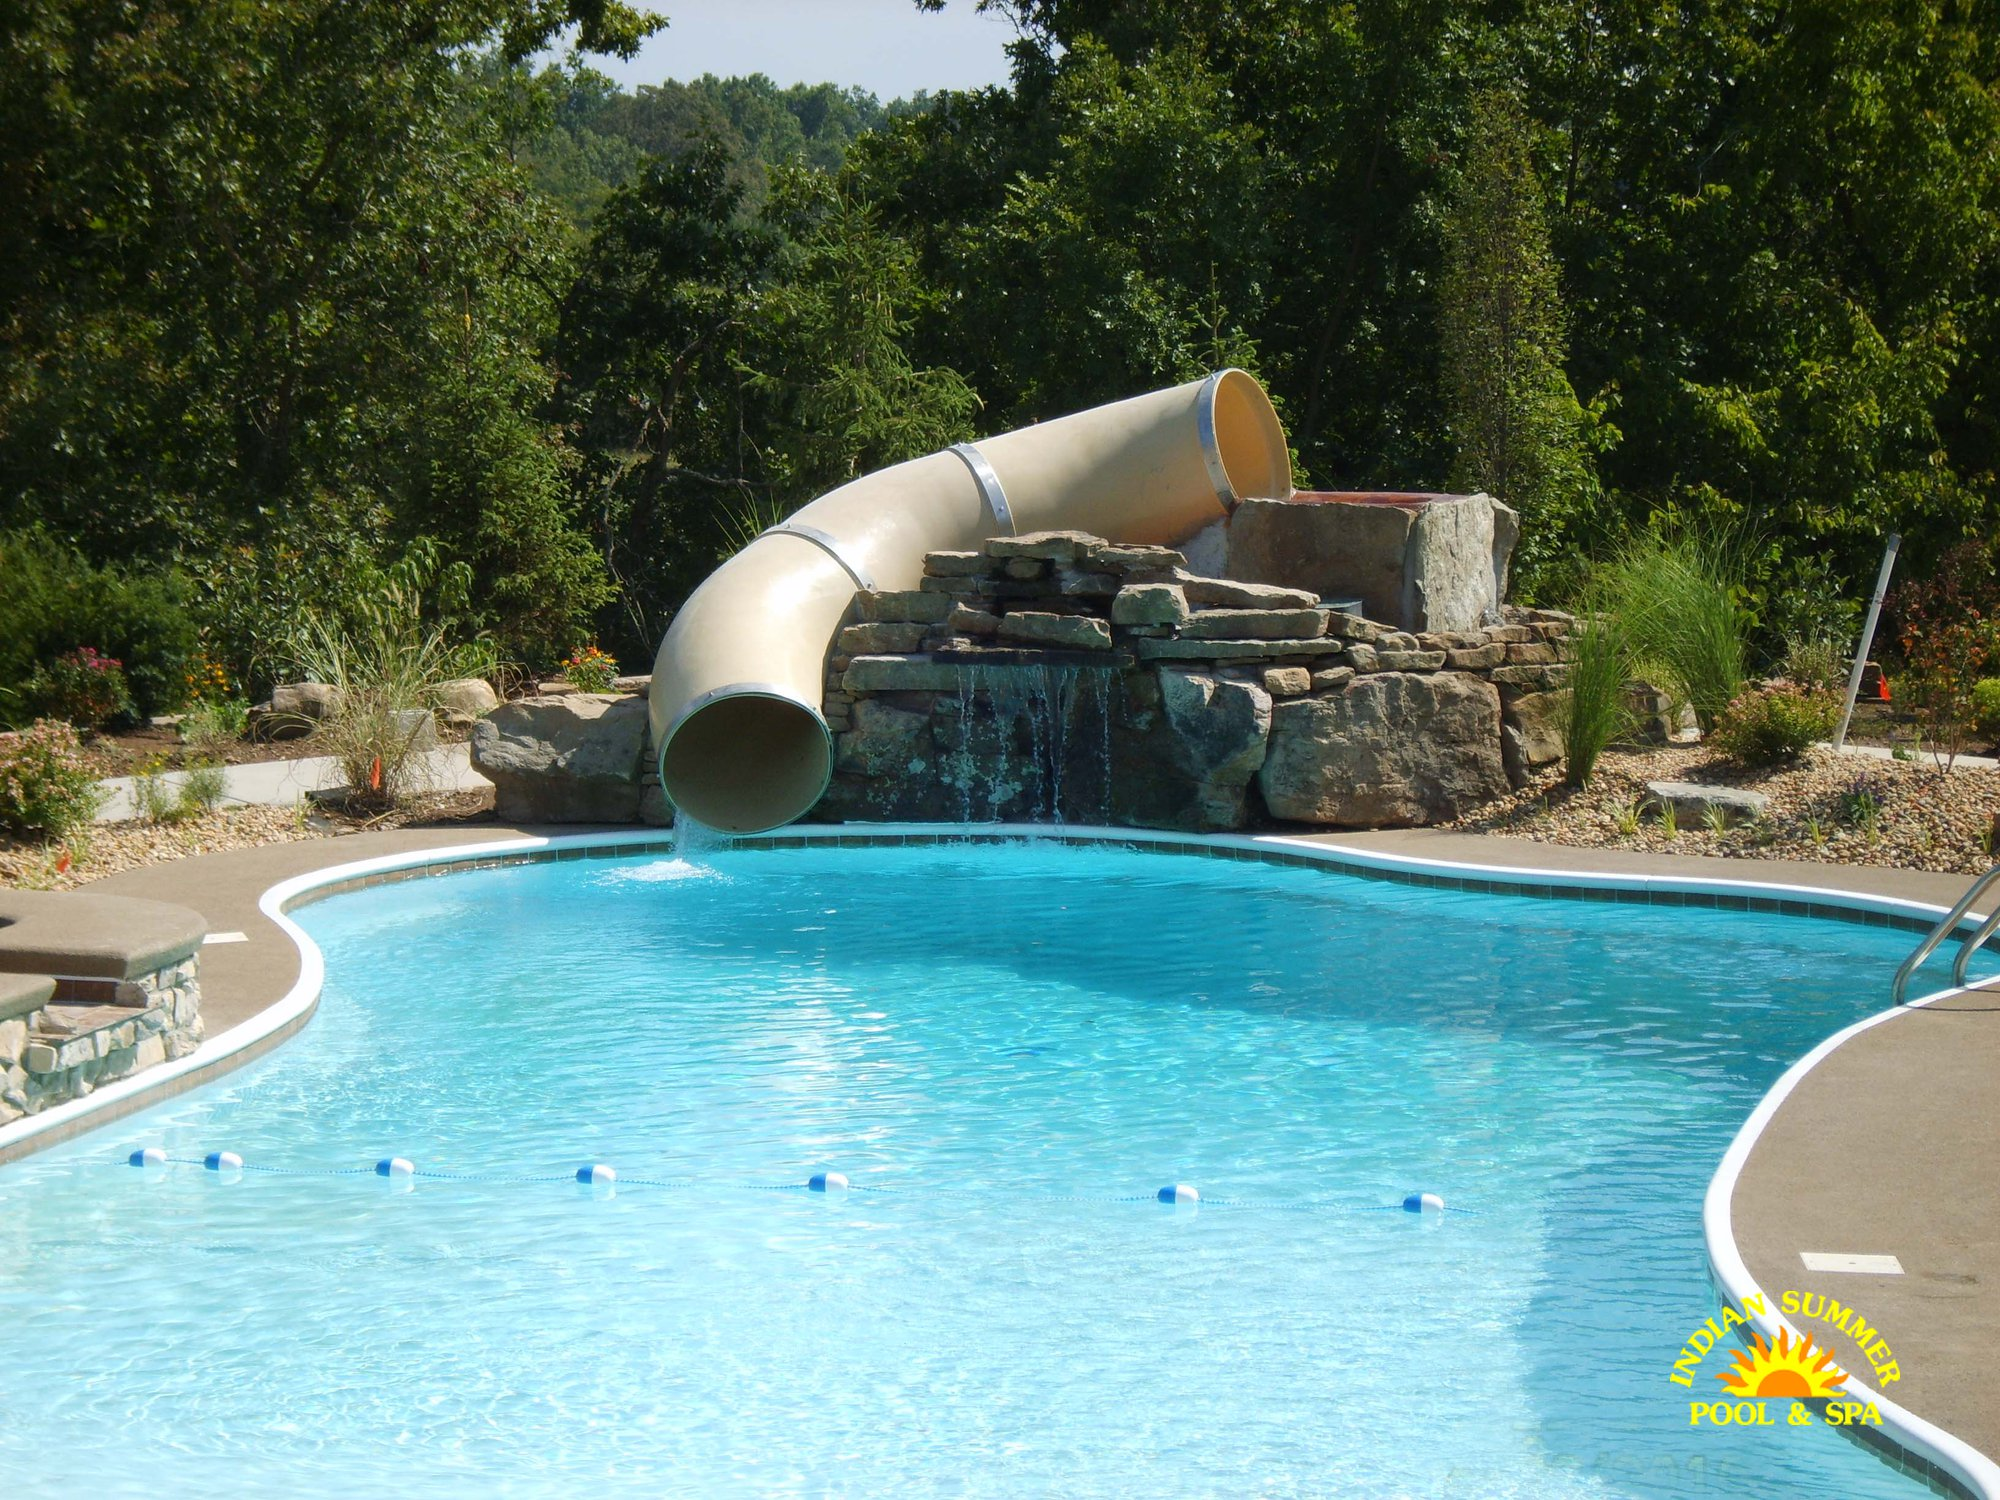 Hybrid pools springfield mo indian summer pool and spa for Spa and pool